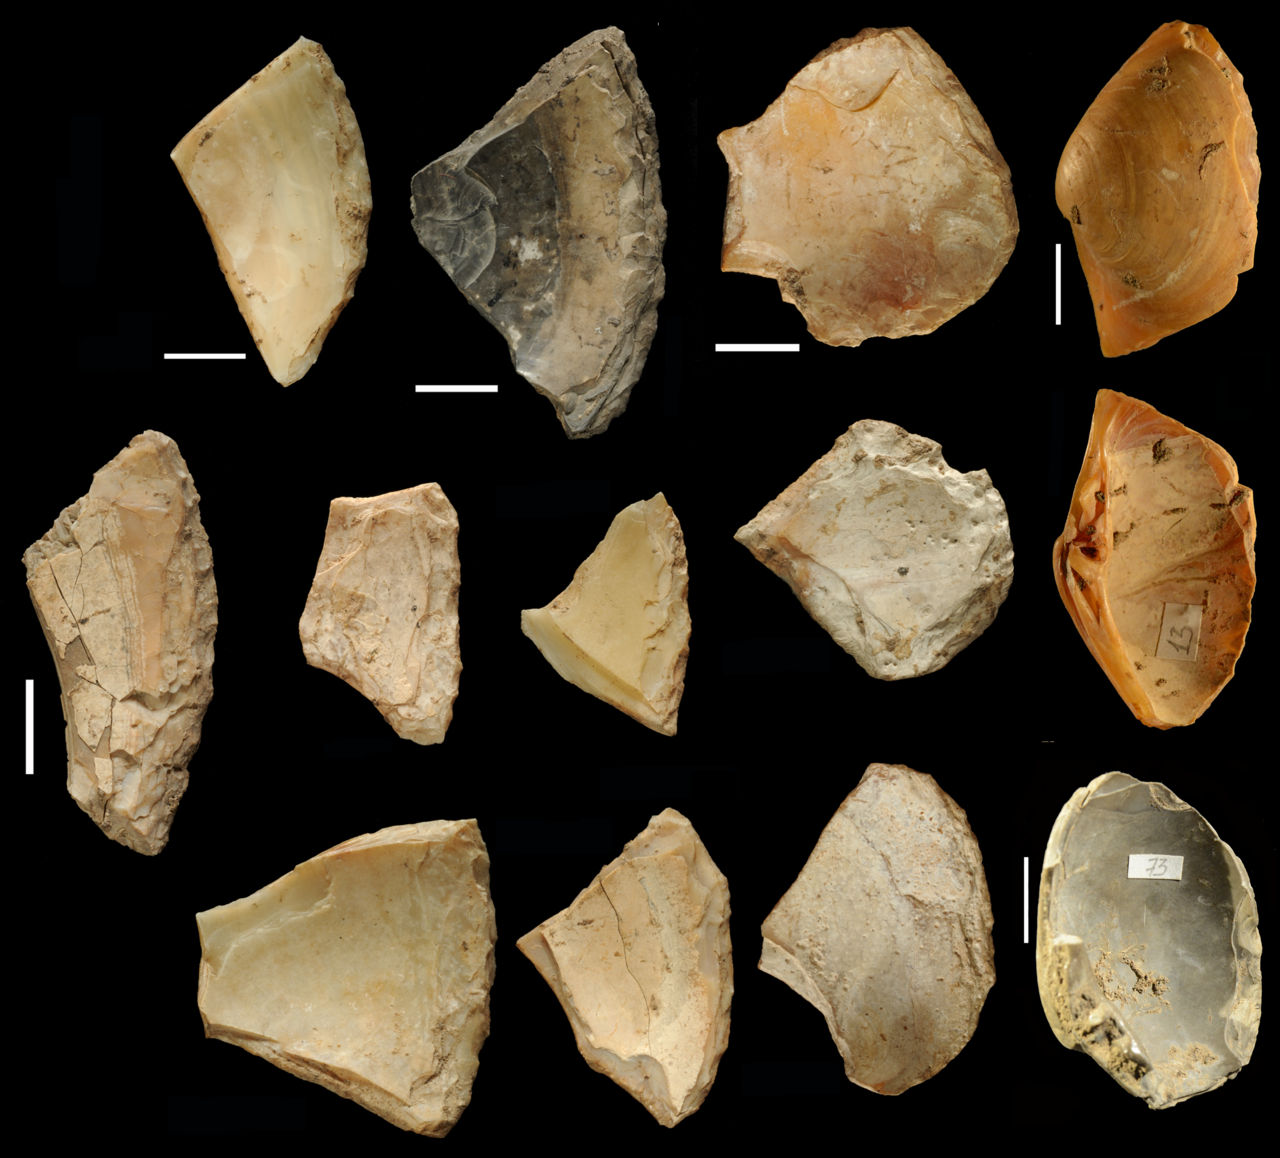 Shell game: Neanderthals likely found these cutting tools beneath the waves.